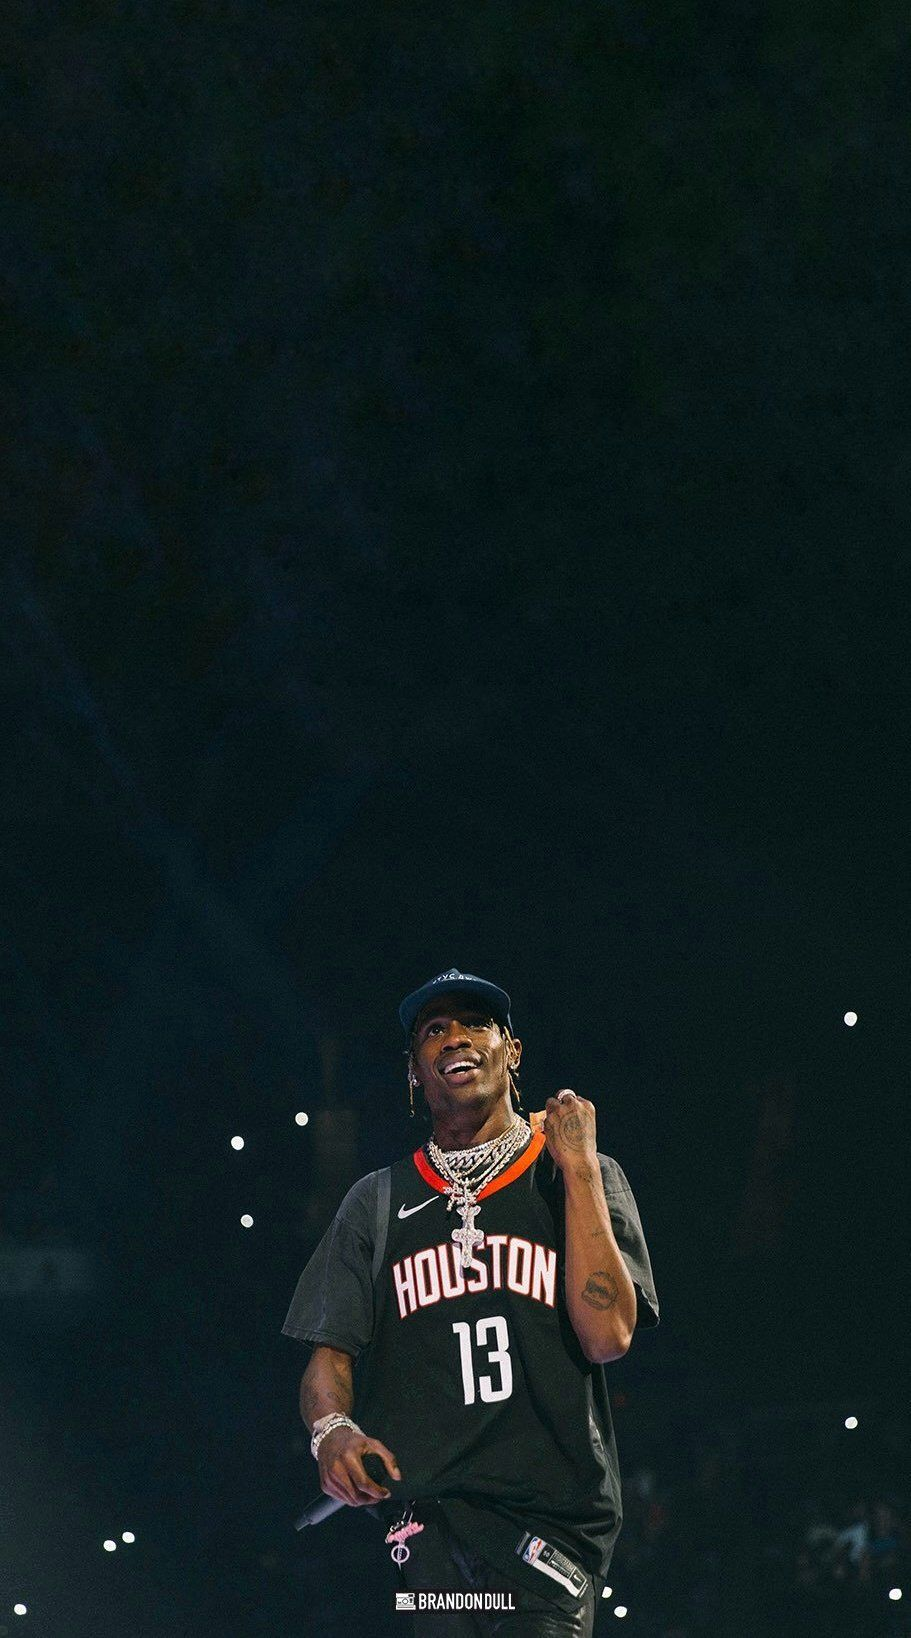 Pin by Antonio Rodriguez on travis Travis scott iphone wallpaper